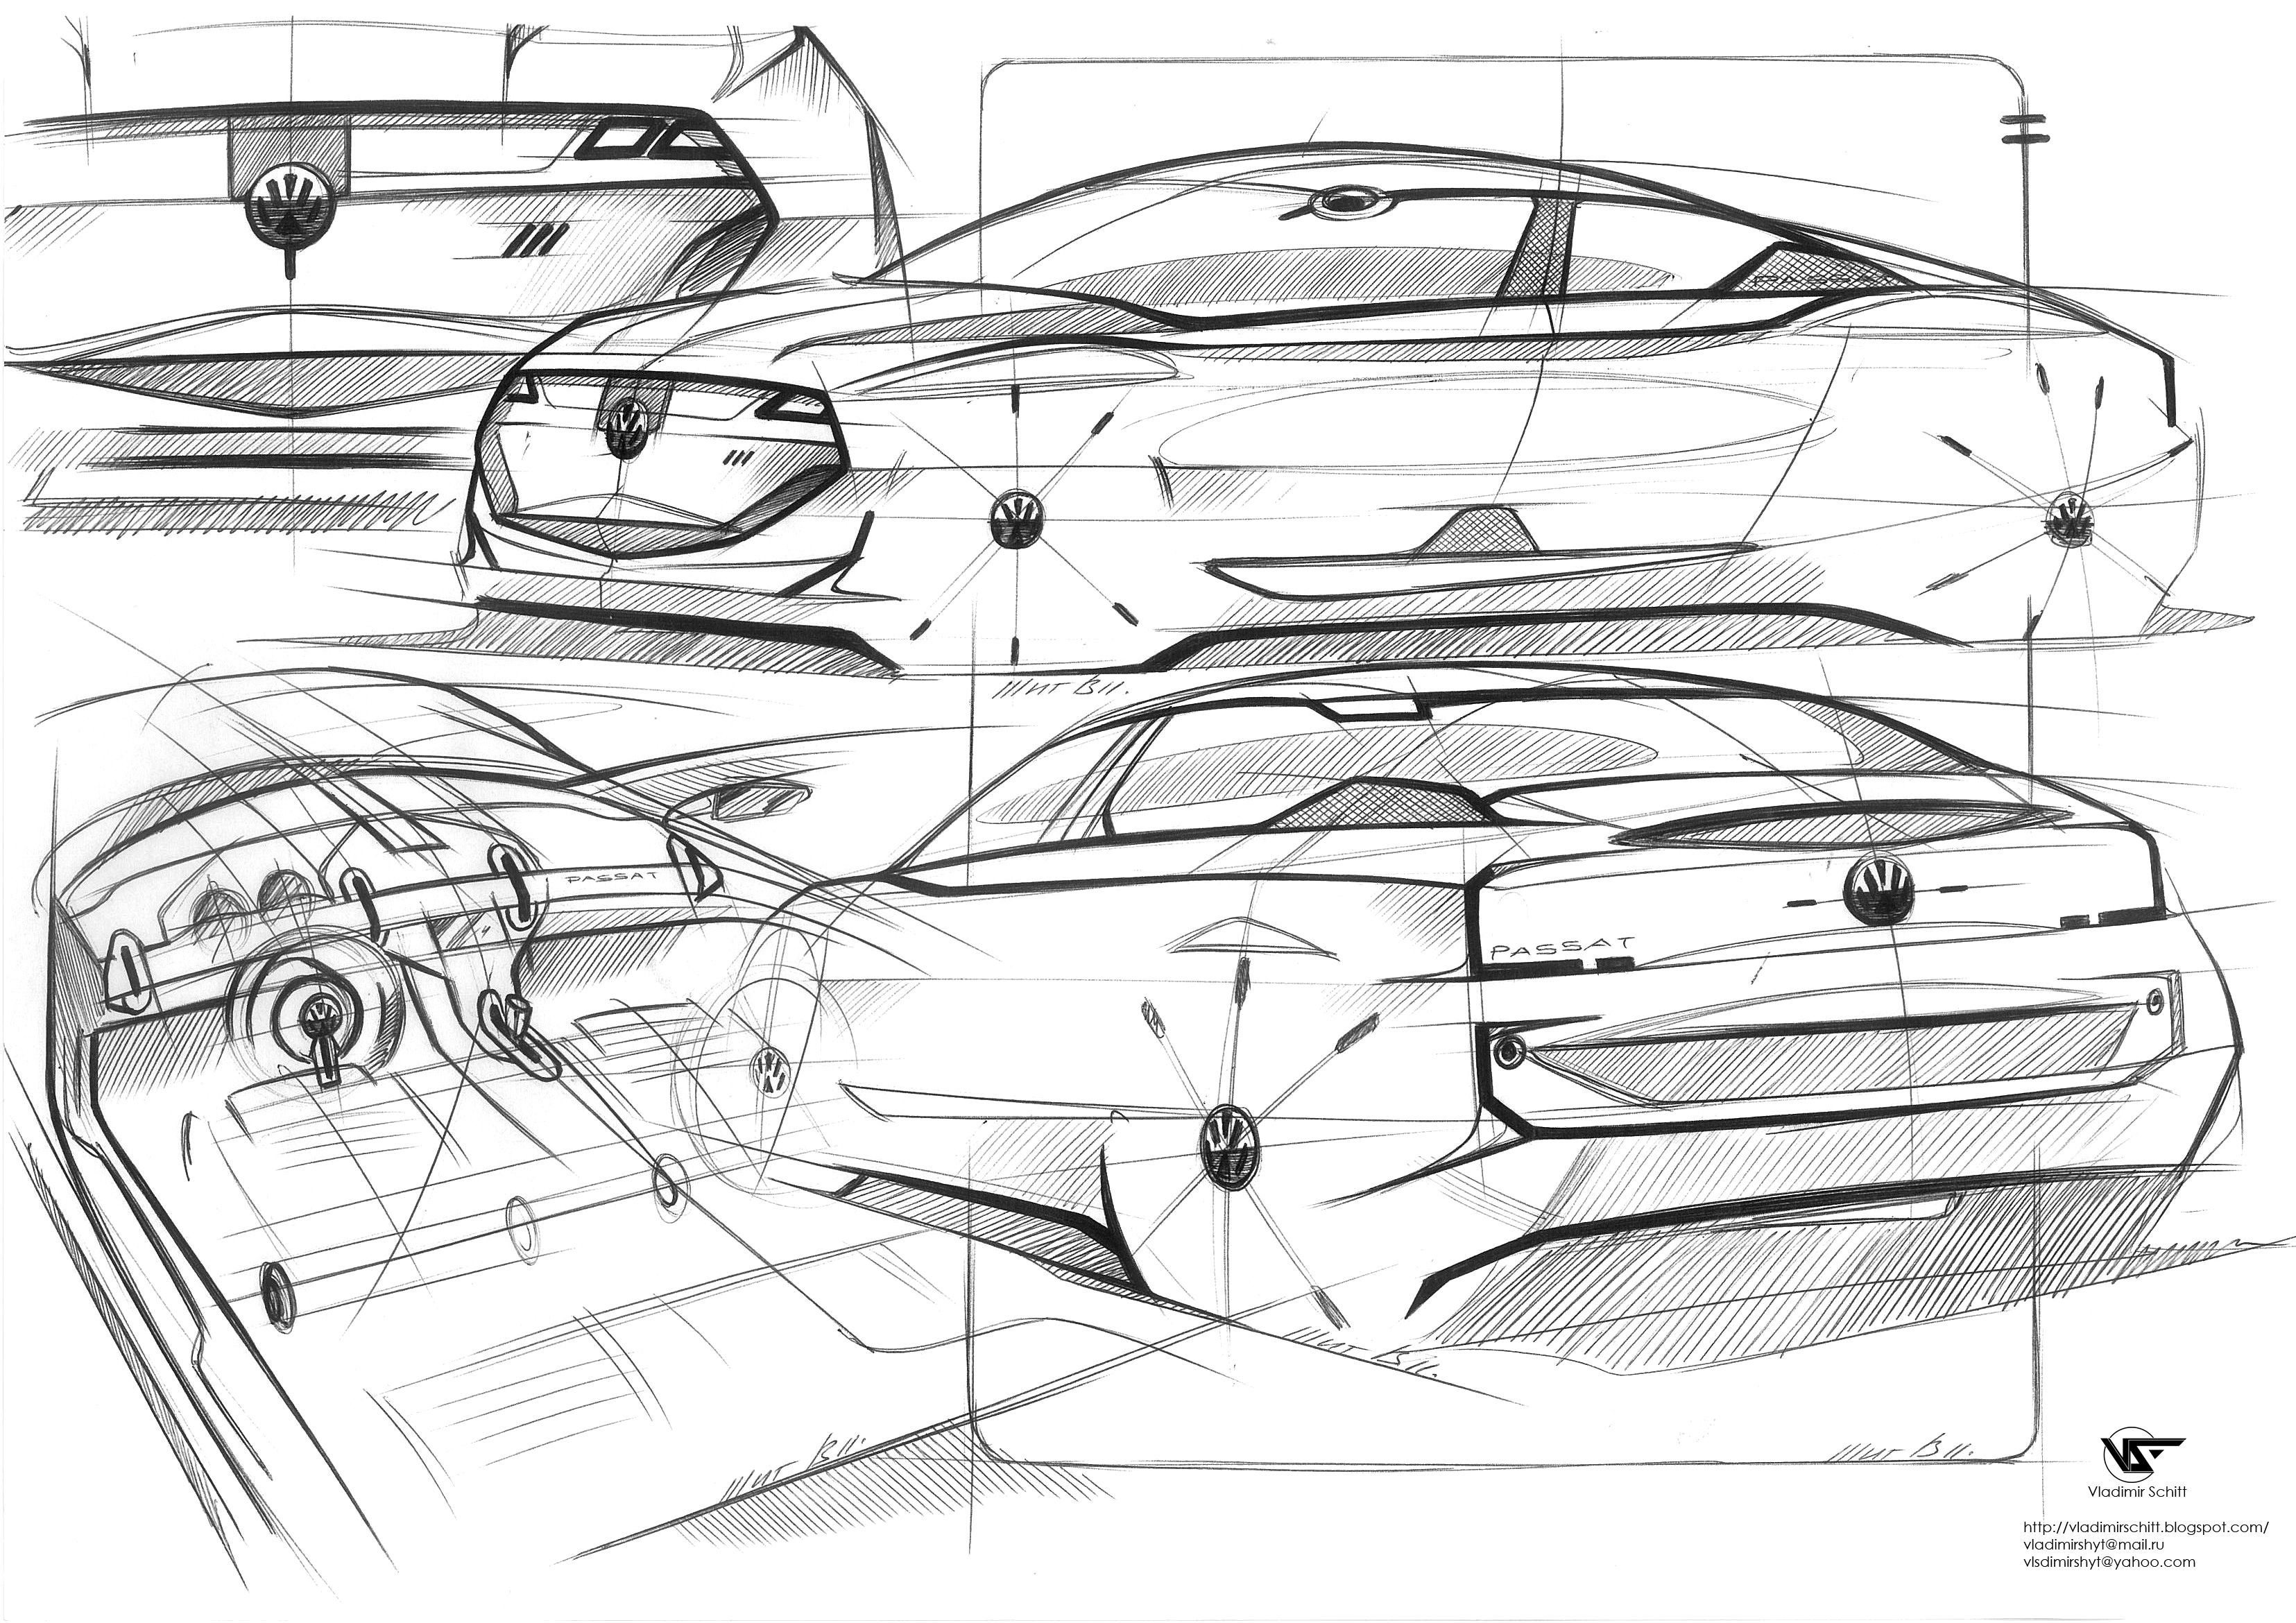 Pin by Jingyi Li on Vehicle | Pinterest | Car sketch and Sketches